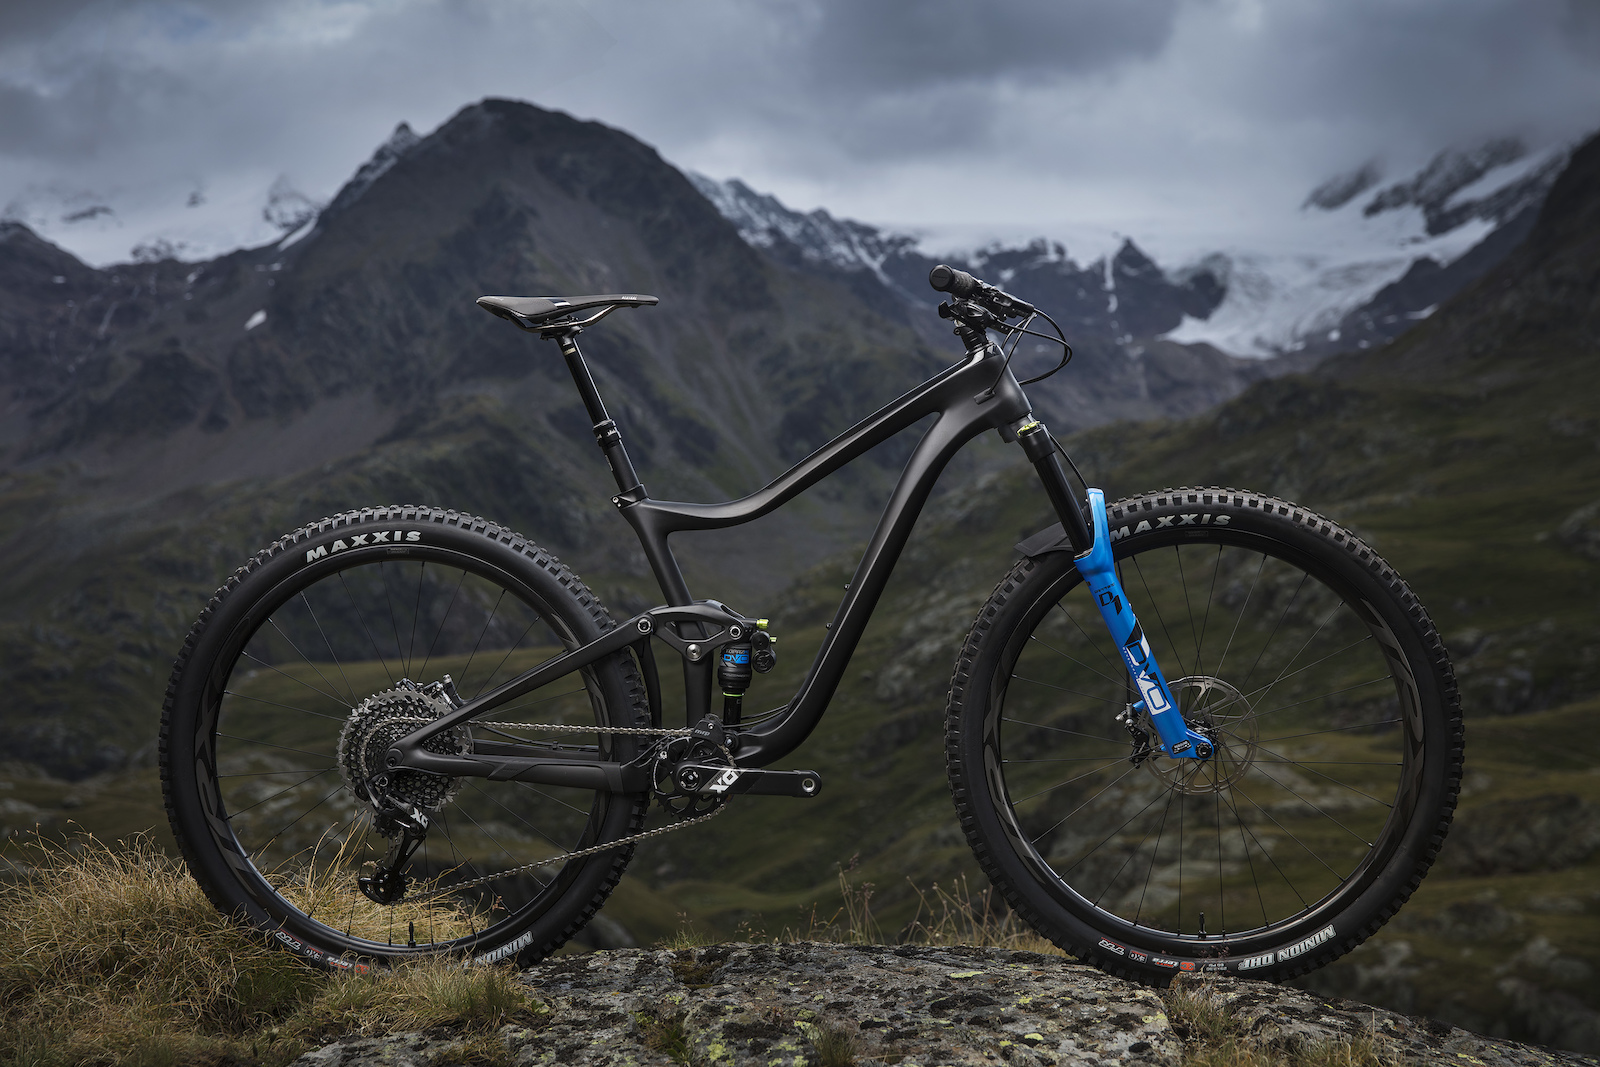 cee93de4092 First Ride: 2019 Giant Trance 29 - Pinkbike